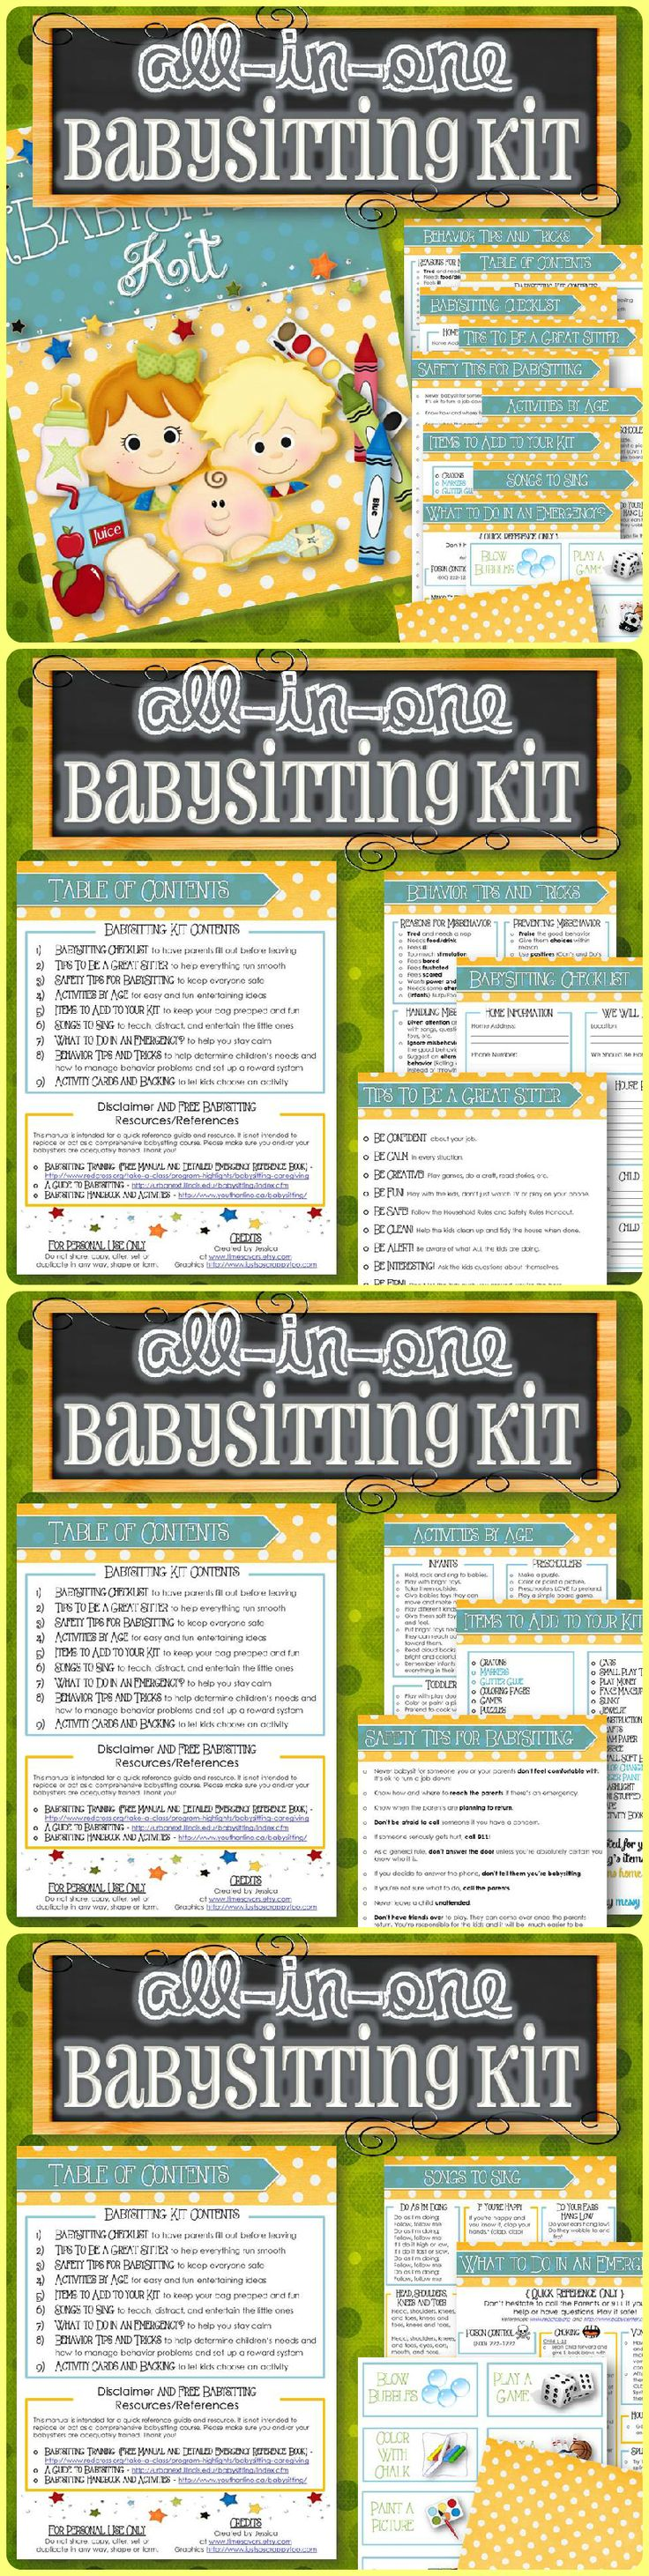 An easy way to either become or teach babysitters how to do a fantastic job and help them become a favorite babysitter by the parents AND the kids. It contains the items needed to help keep everyone safe, handle emergencies, deal with misbehaving, have fun activities, set up a reward system, easy checklists, and make a fun Babysitting Bag. Babysitters can have their kit created within minutes and although additional items can be added, this kit has it all covered!